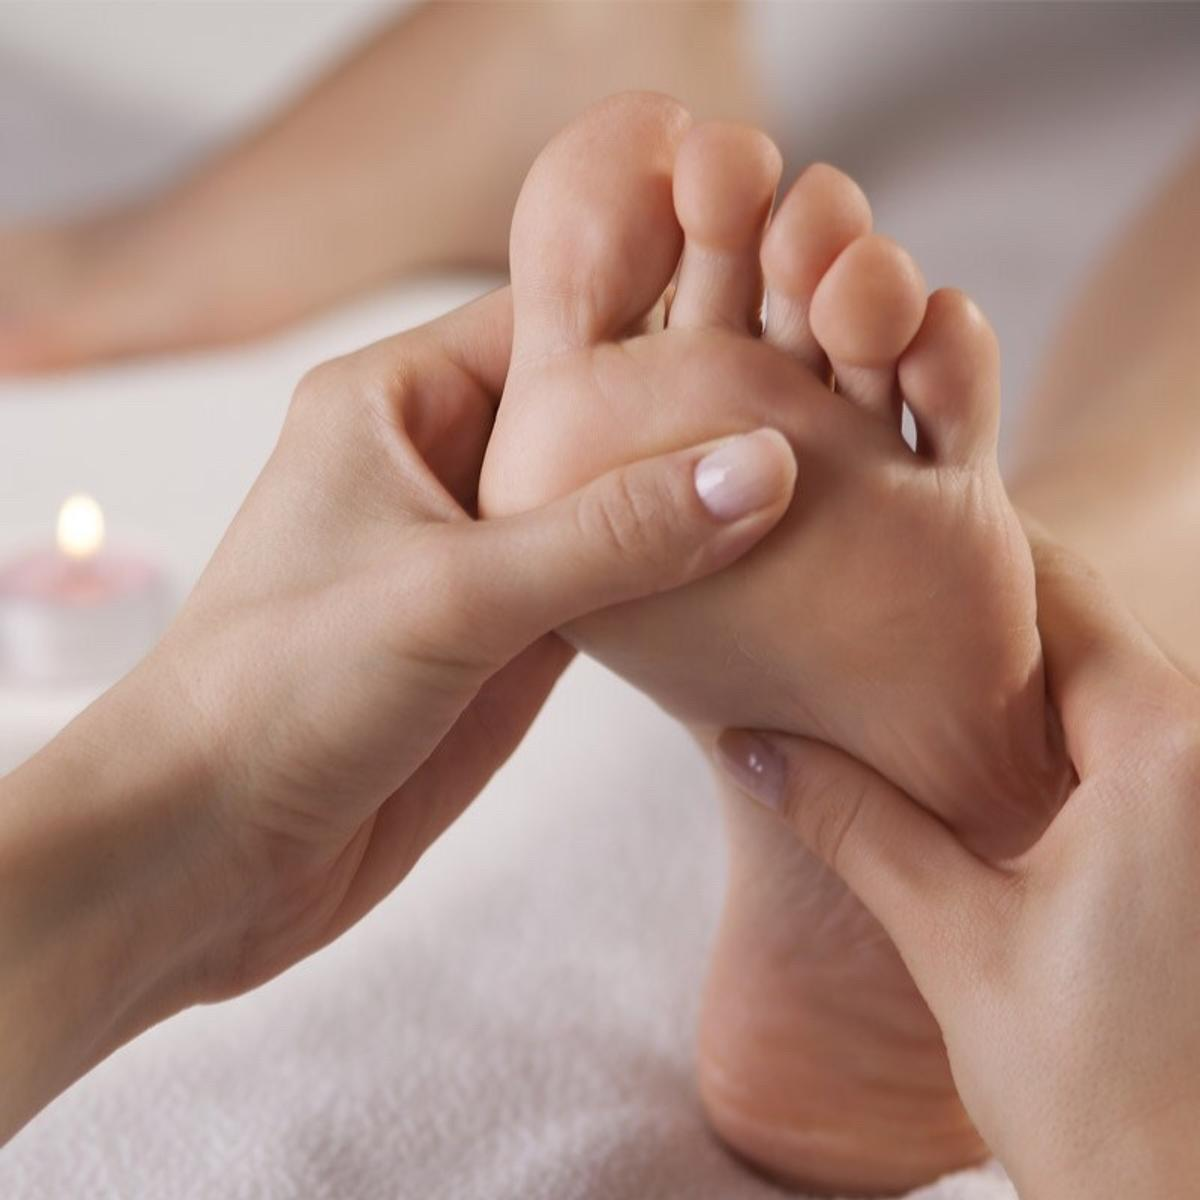 Hey guys I'm offering my reflexology (foot massage) treatment for HALF PRICE for anyone who has not experienced the blissful relaxation of this beautiful treatment. Feel free to message me on here or follow my instagram page. Sapphire_signature1